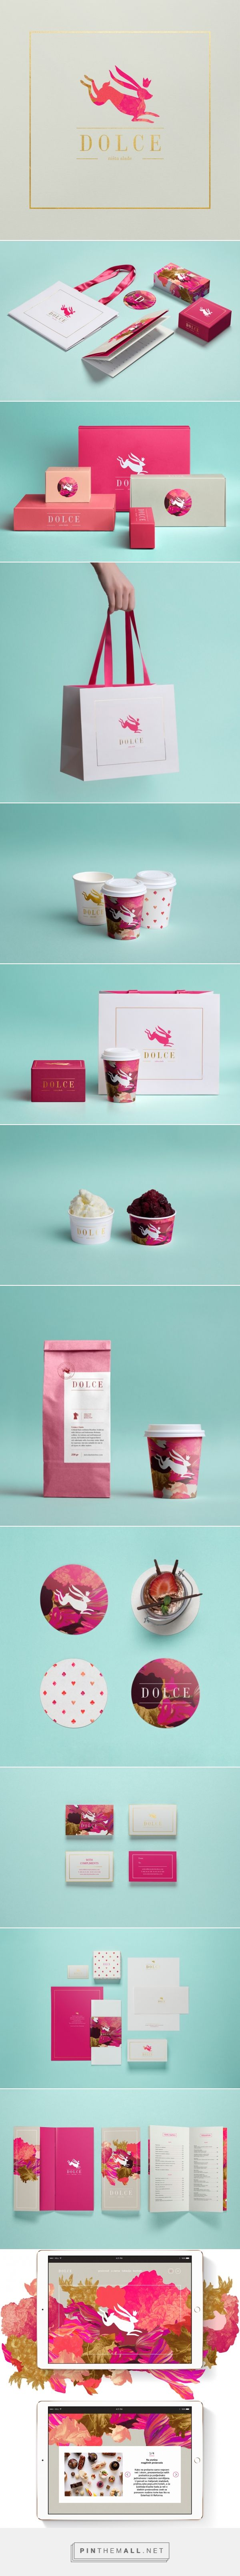 Dolce Branding by Metaklinika by Shane Wilson. Beautiful pink packaging PD